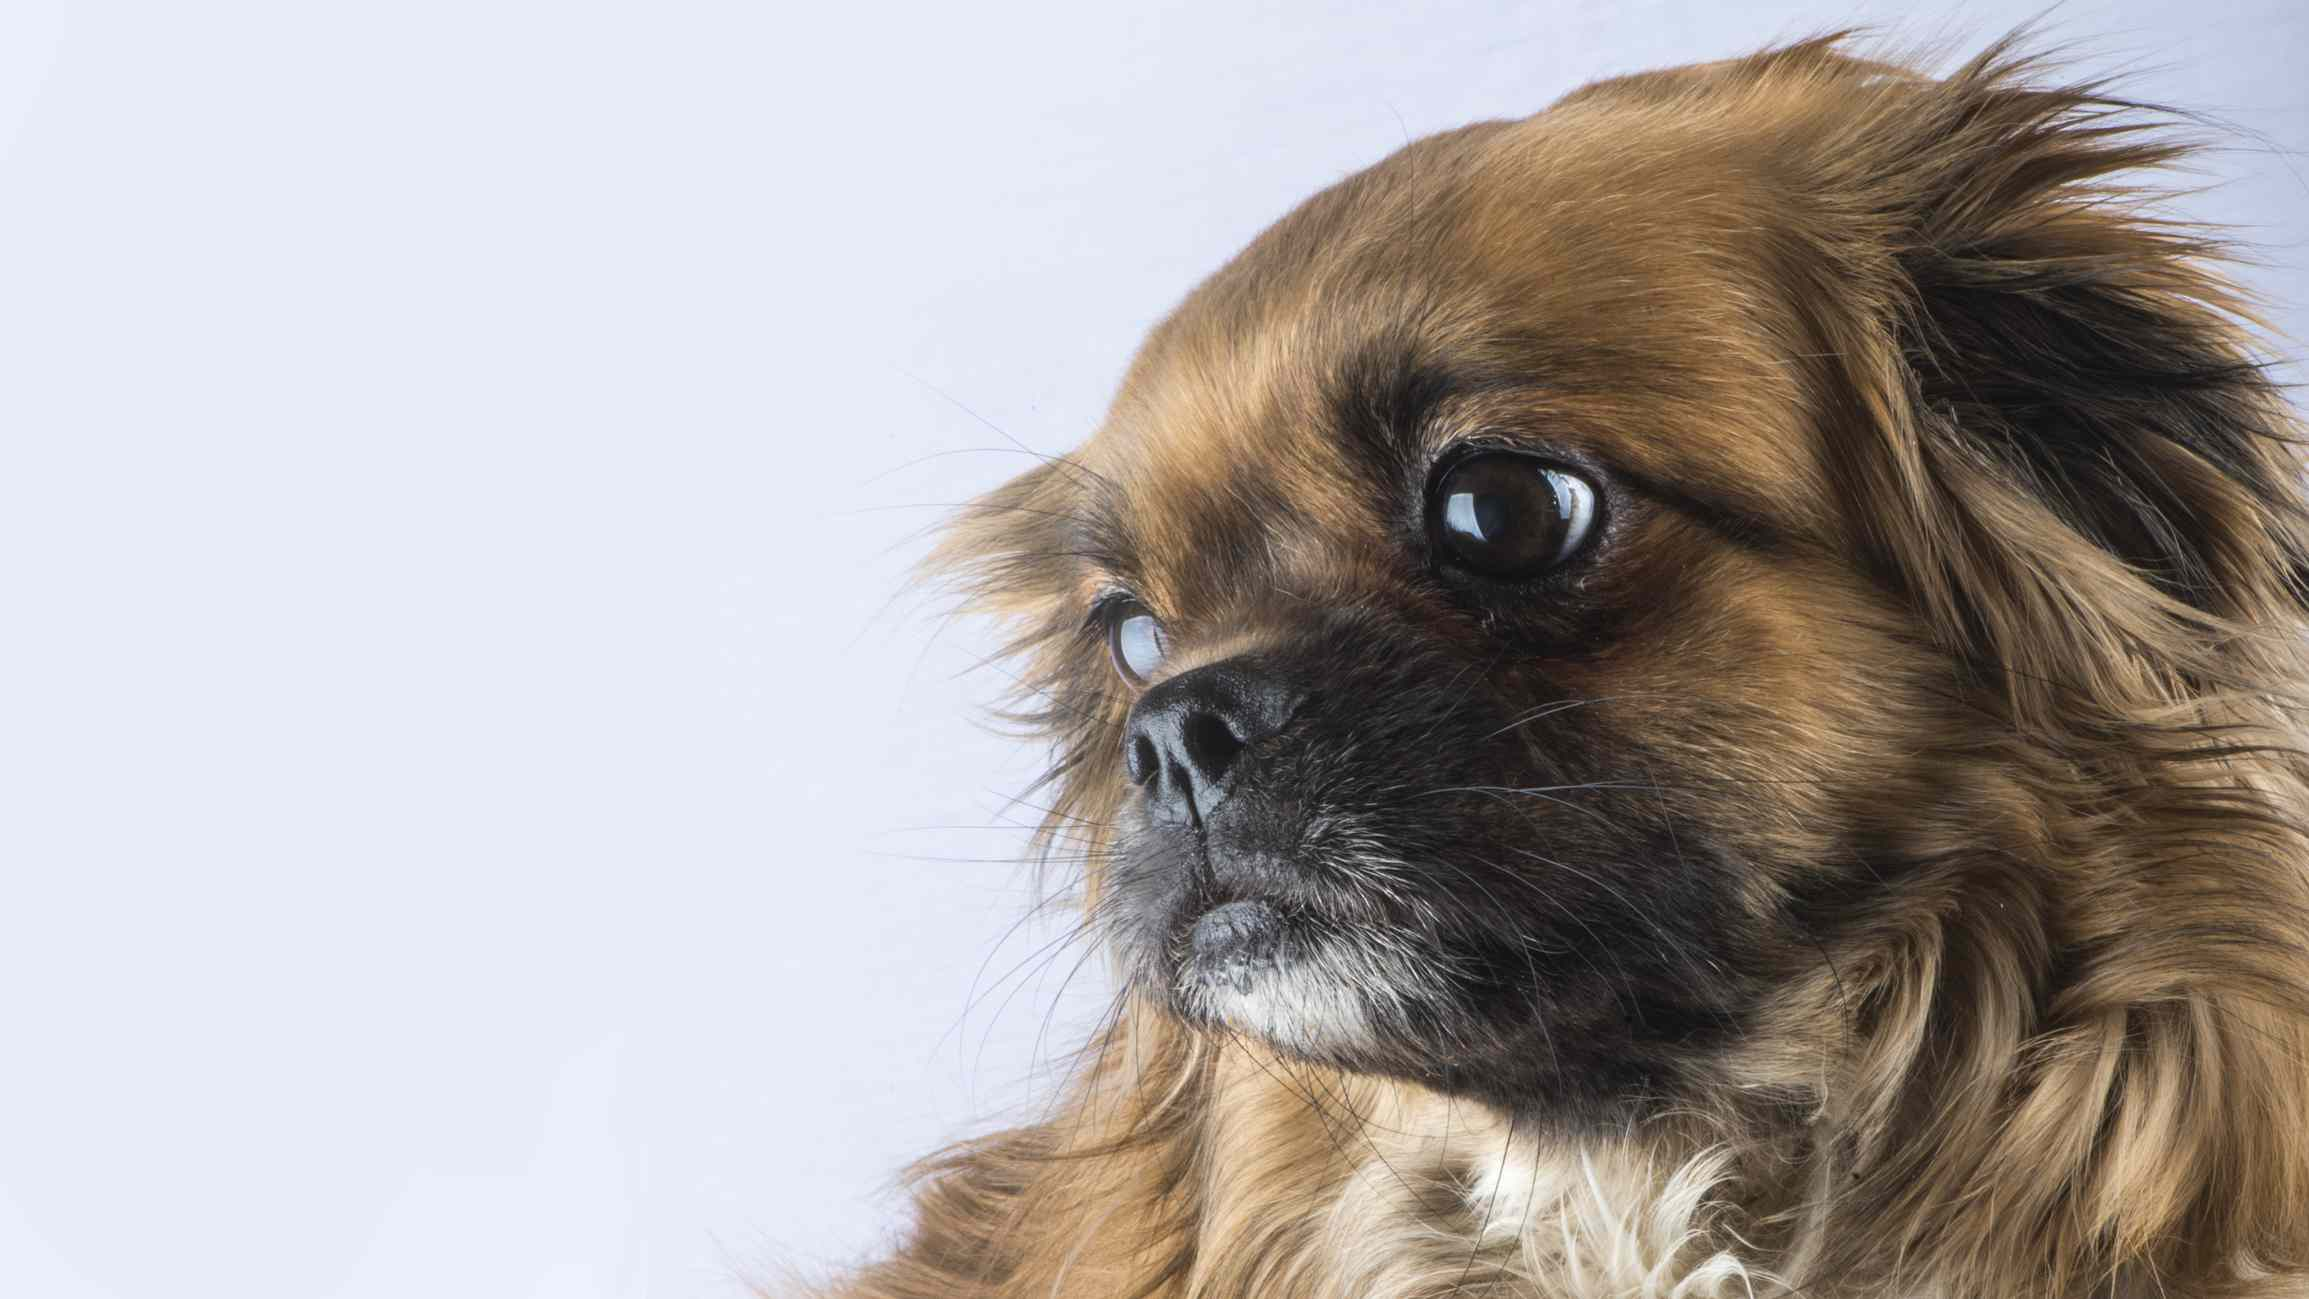 A brown pekingese dog looking to the side.